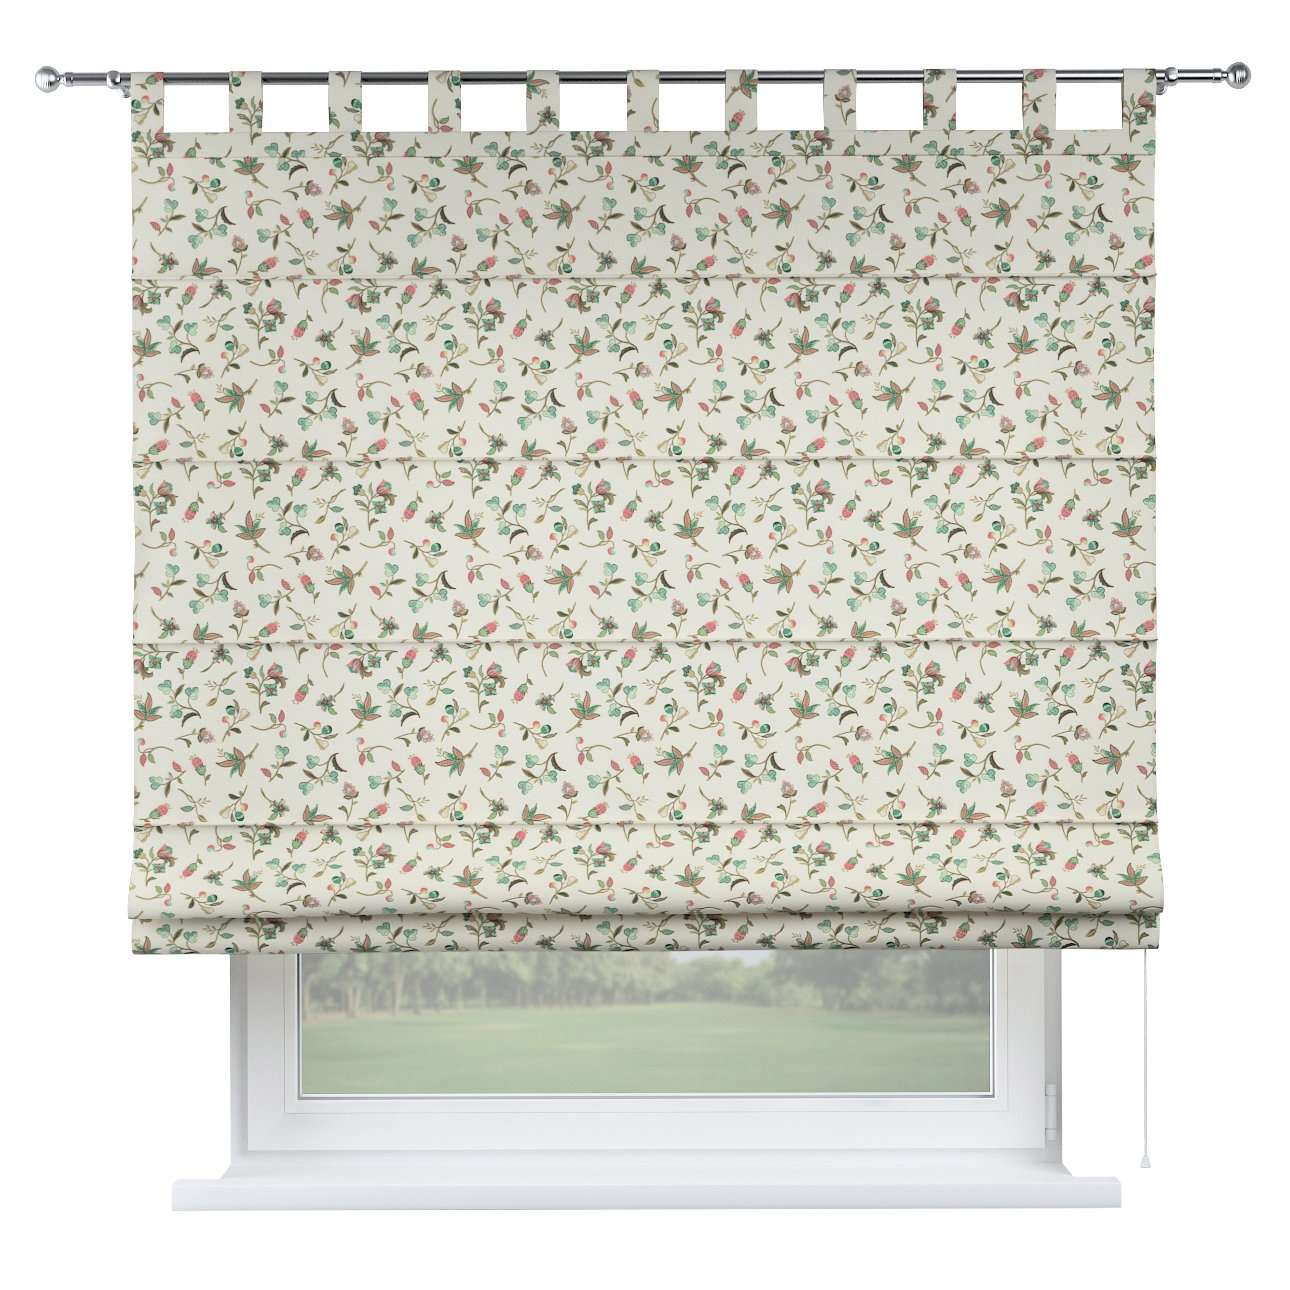 Verona tab top roman blind 80 x 170 cm (31.5 x 67 inch) in collection Londres, fabric: 122-02